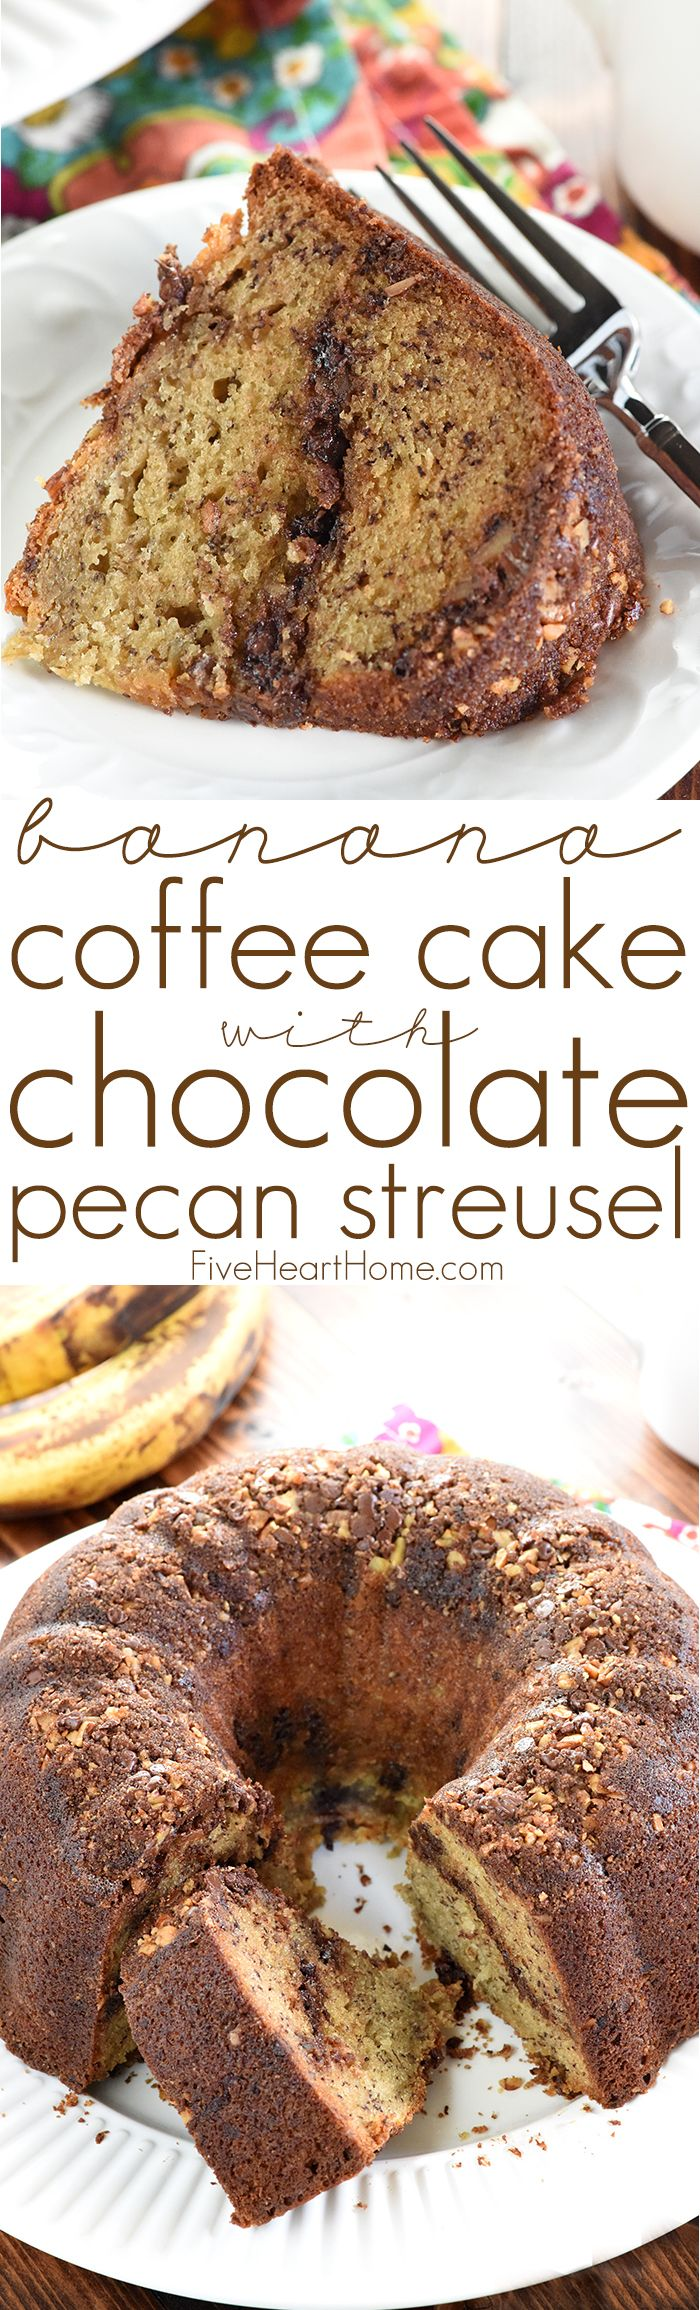 Banana Coffee Cake with Chocolate Pecan Streusel ~ this decadent Bundt cake has a dense, moist interior, a crunchy exterior, and a sweet surprise ribboned throughout, making it a delicious sweet treat for breakfast, brunch, or even dessert! | FiveHeartHome.com